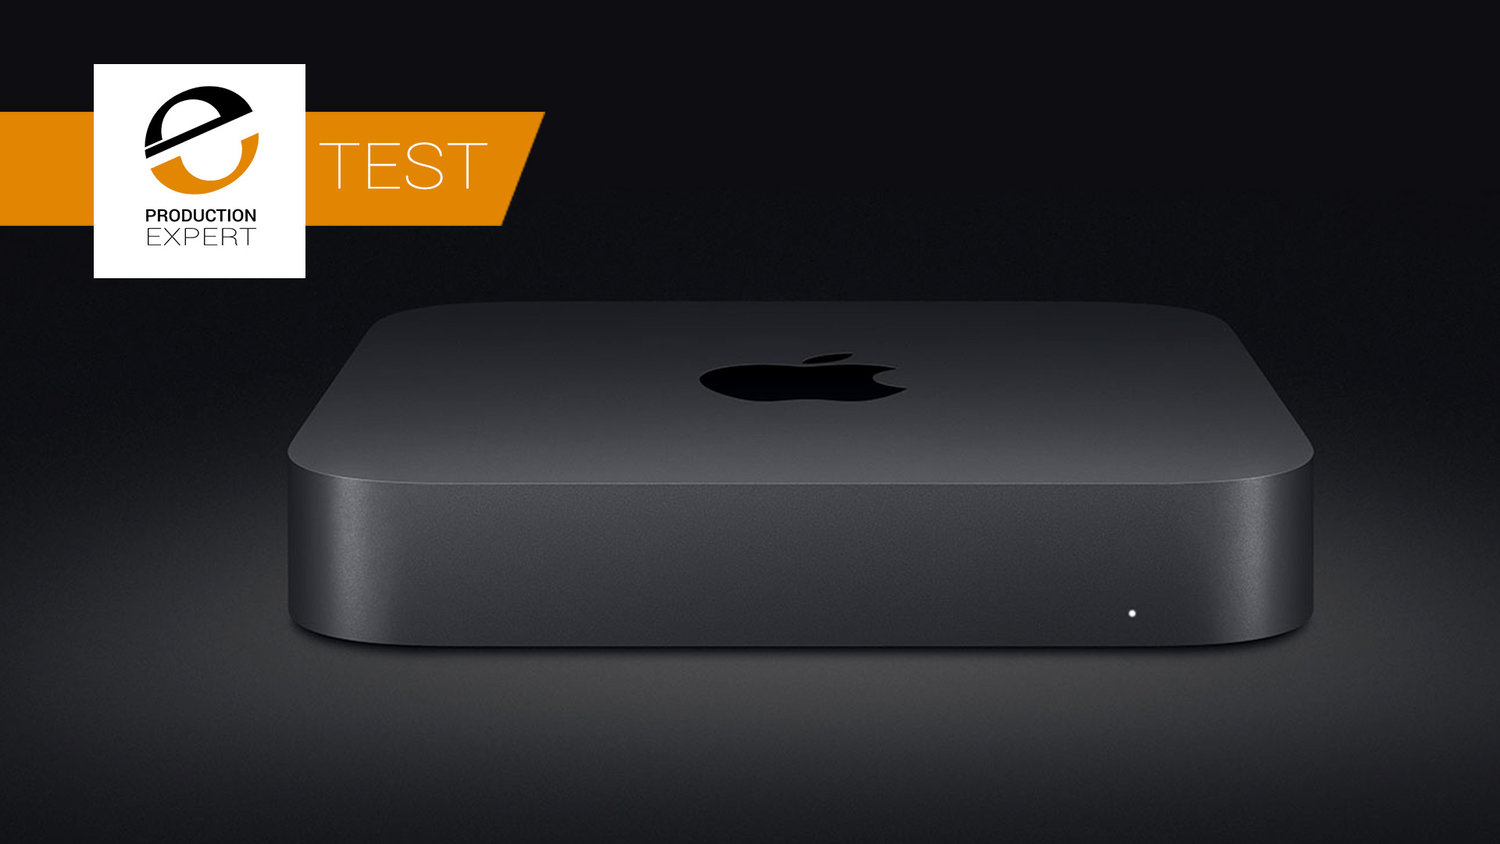 Apple Mac mini 2018 Tested For Audio Production Work - Is